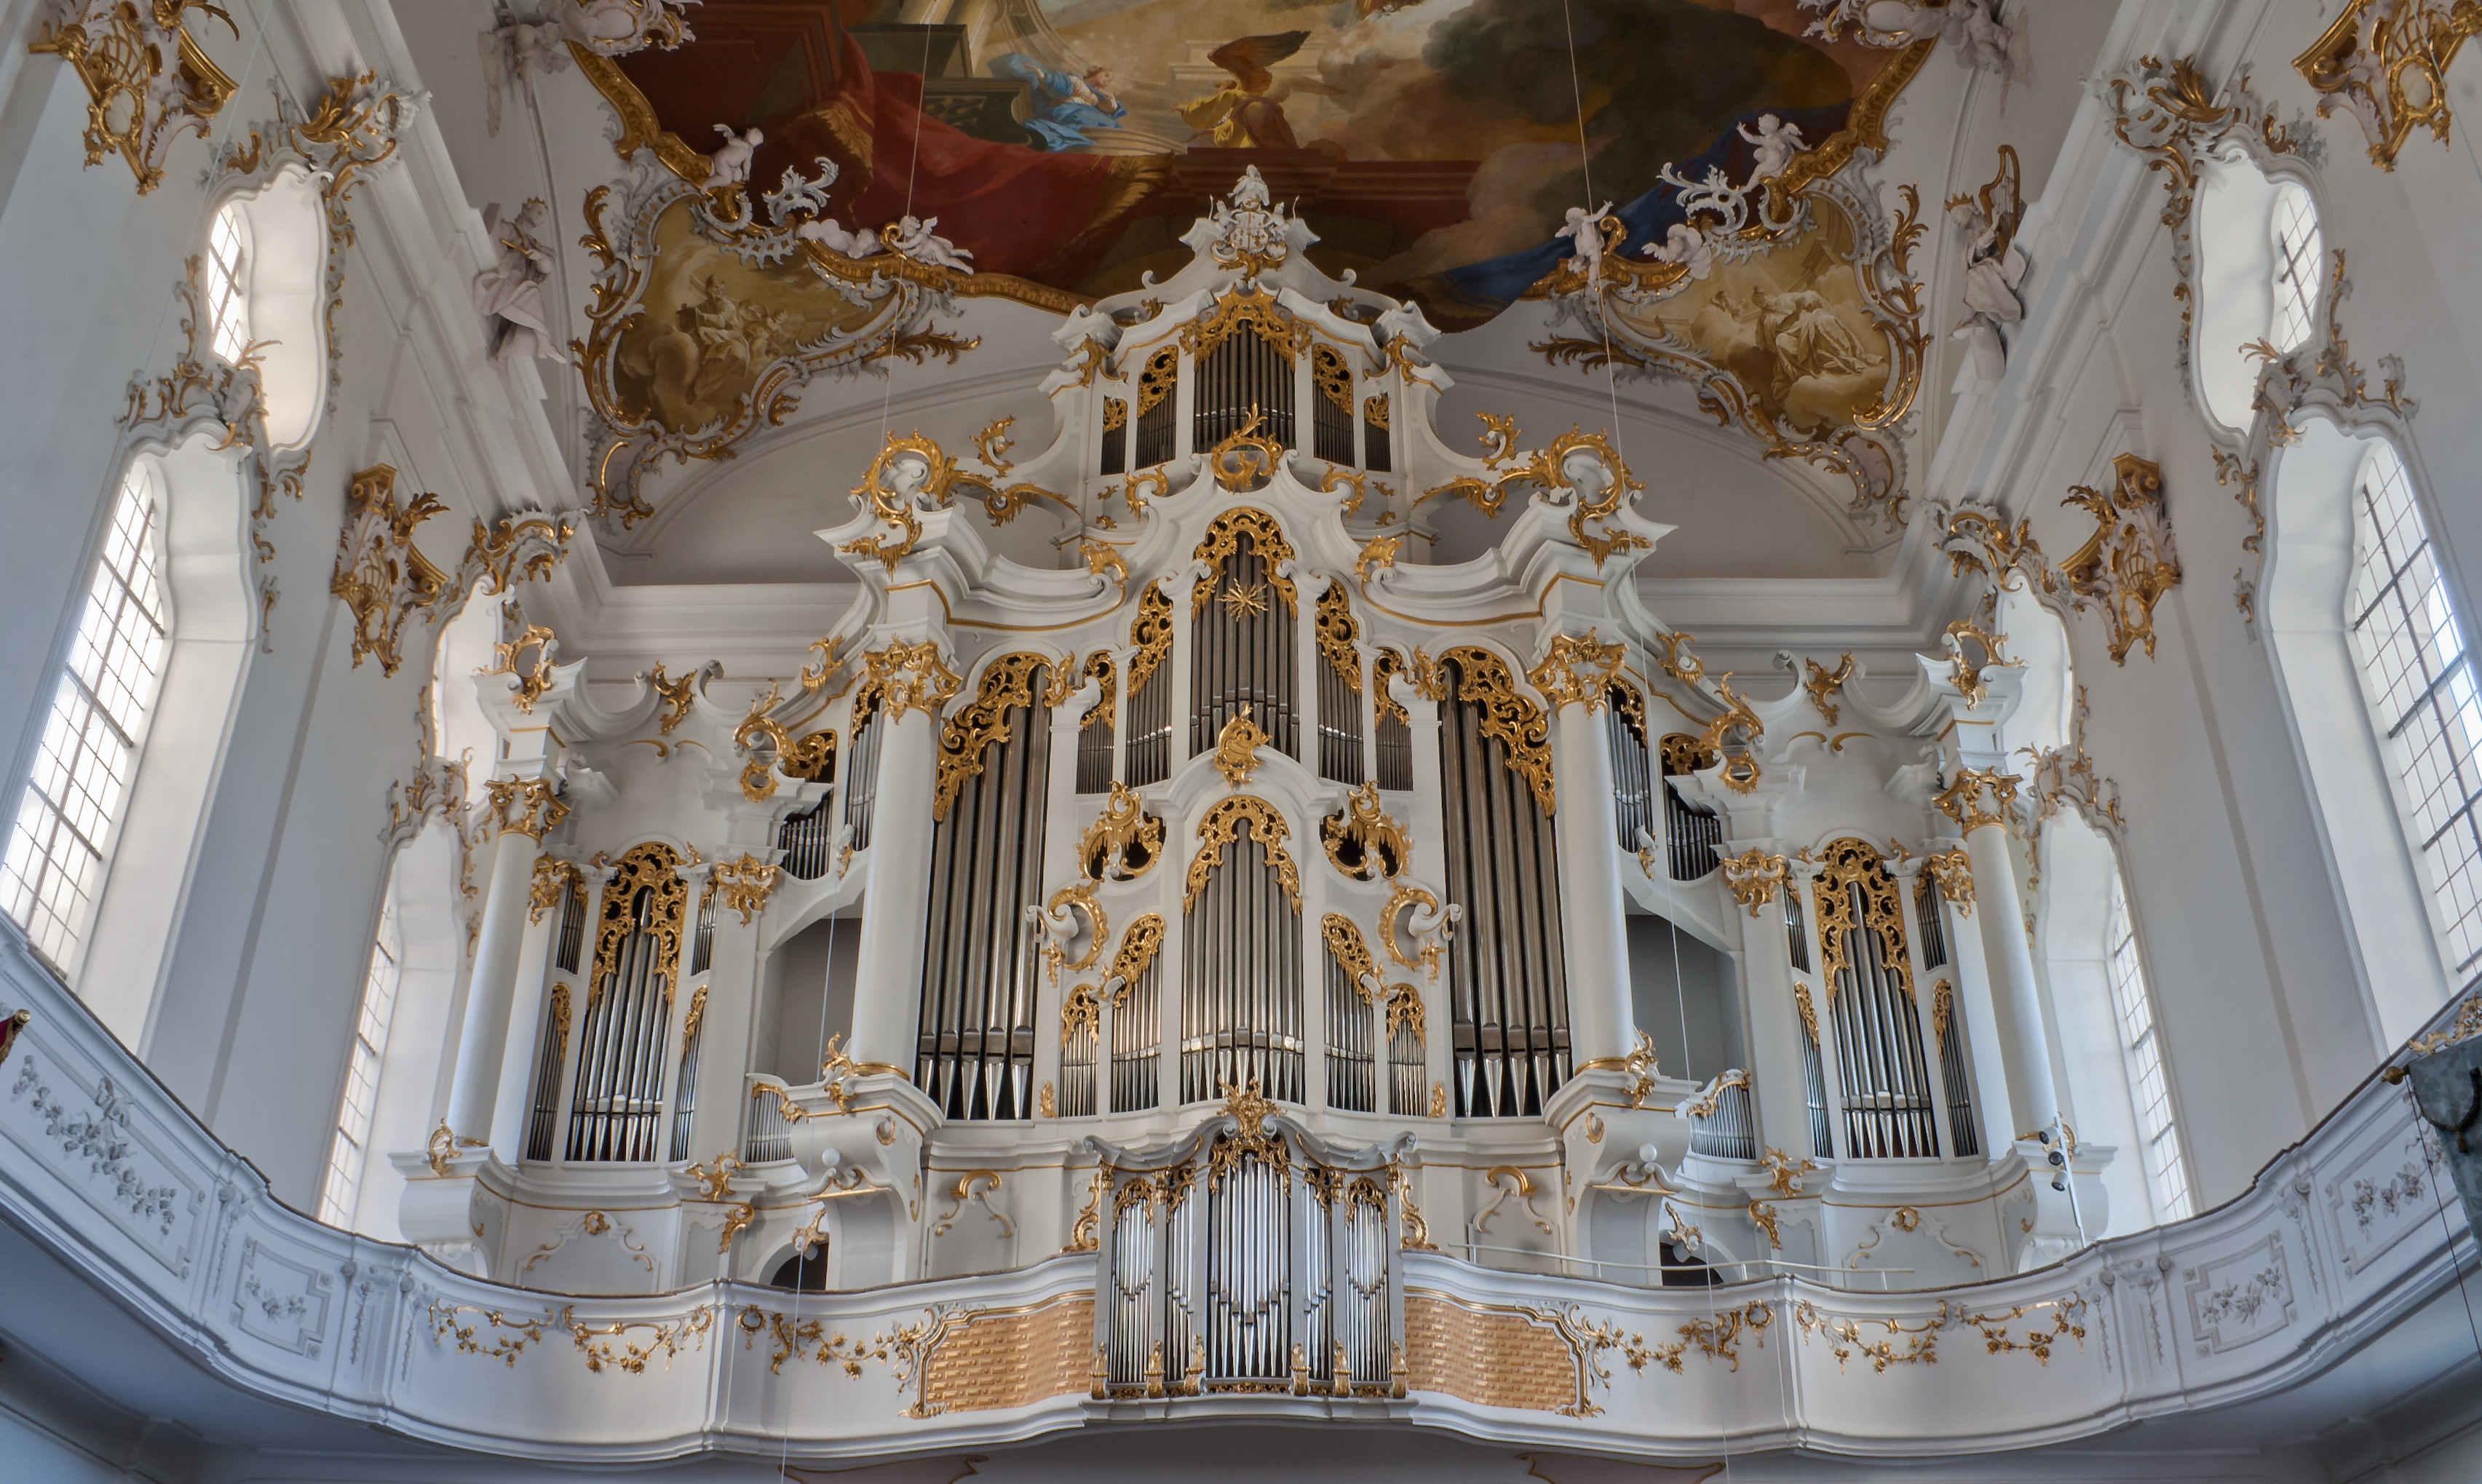 https://upload.wikimedia.org/wikipedia/commons/a/a3/Roggenburg_Klosterkirche_Orgel_2010_10_31.jpg